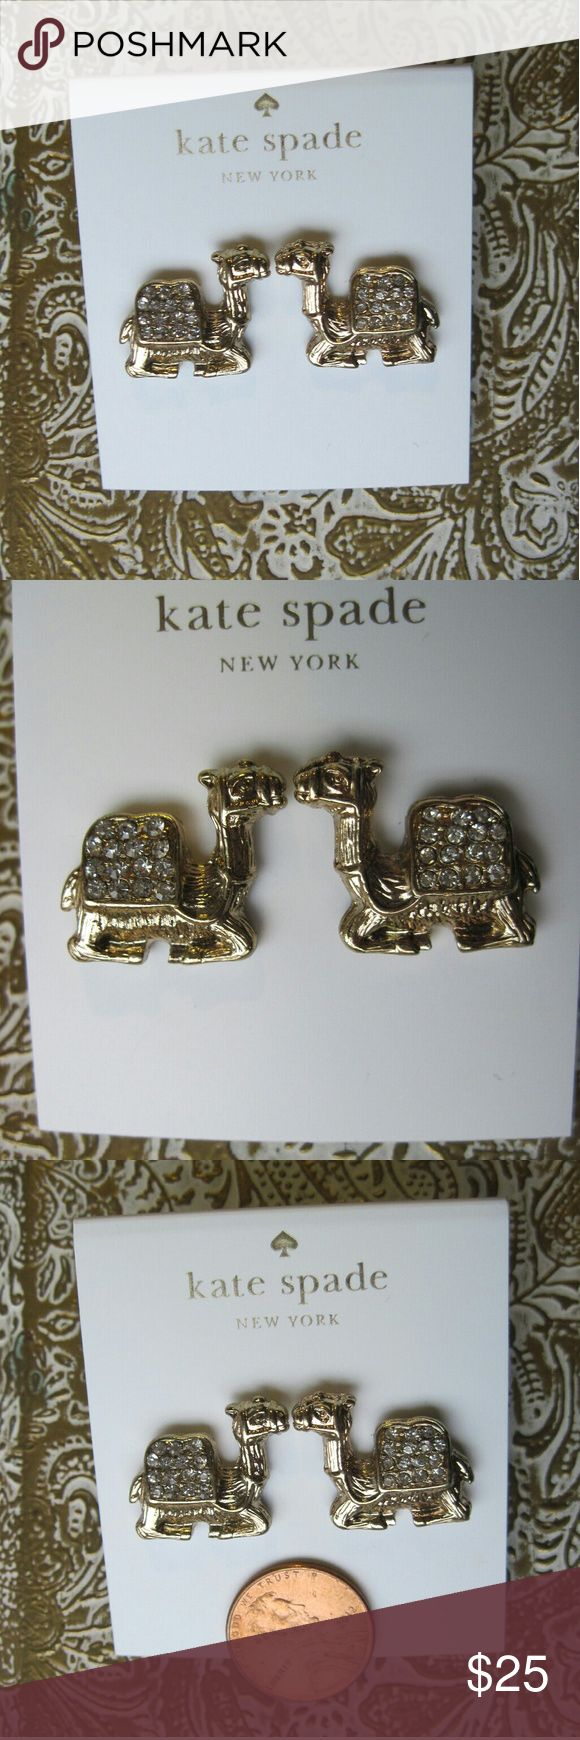 "New Kate Spade Wild One Camel Gold Earrings New, never worn Wild One camel earrings by Kate Spade. Gold plated with clear glass crystal ""diamonds."" kate spade Jewelry Earrings"